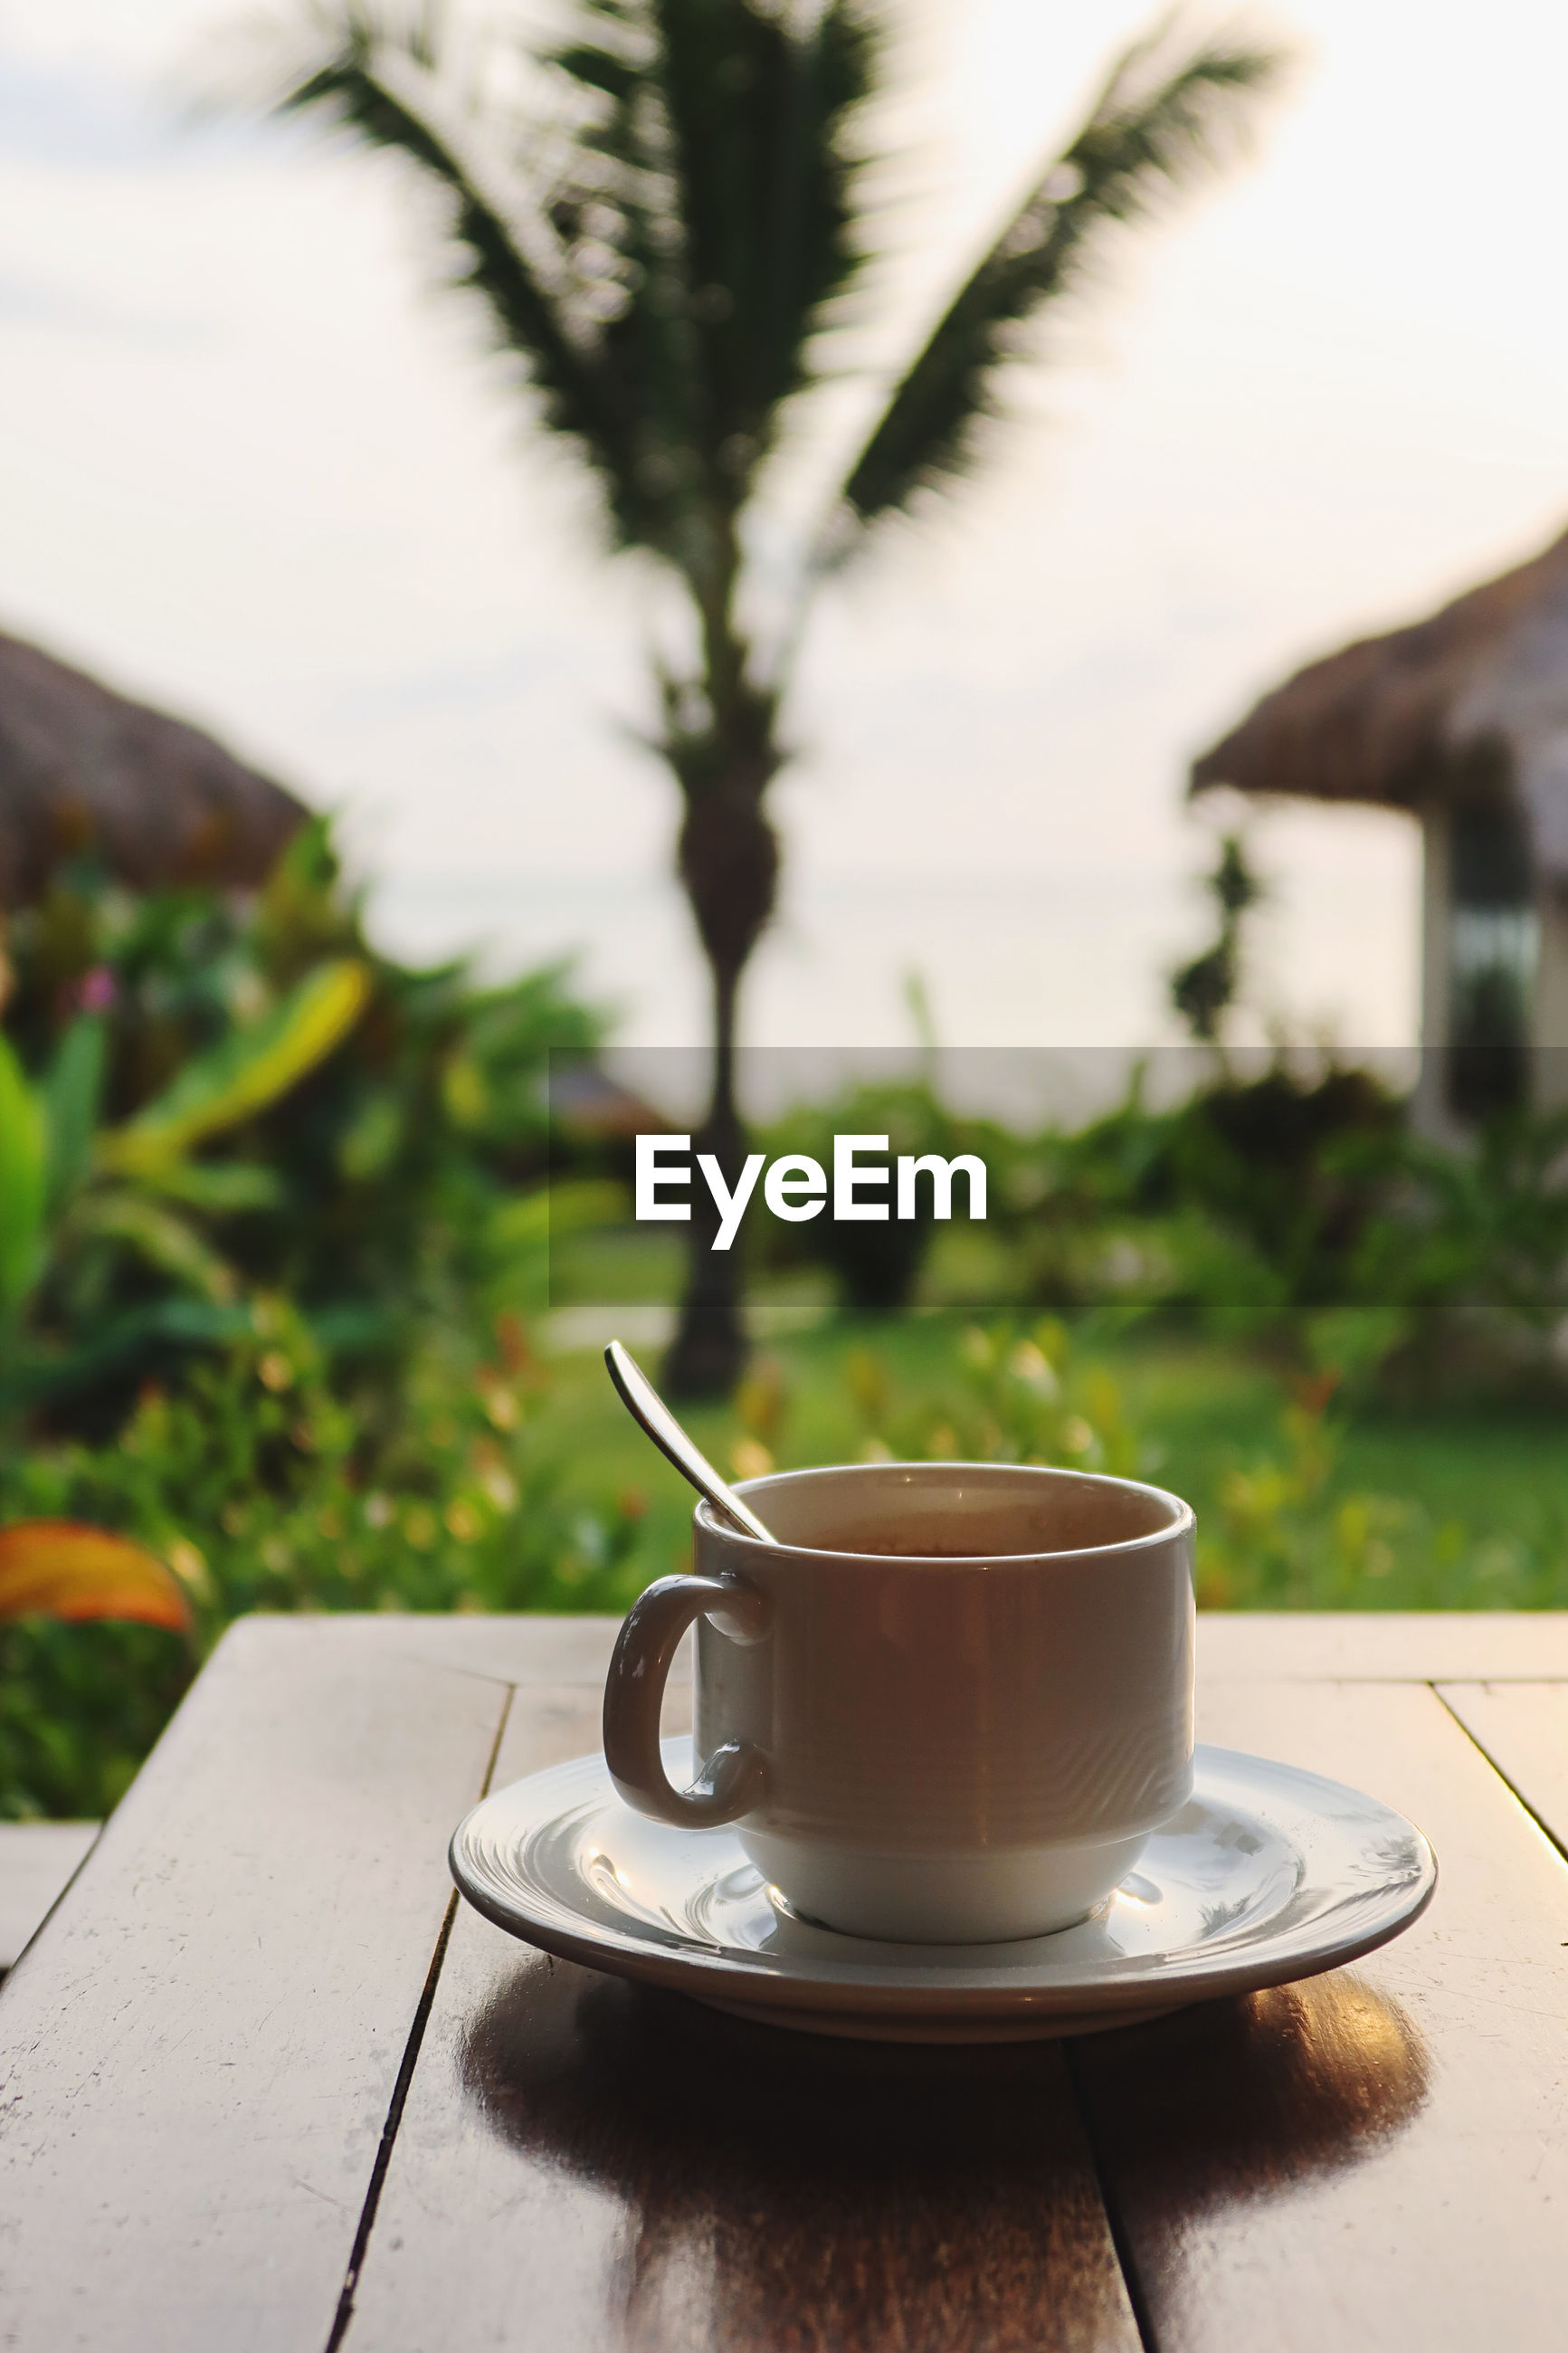 CLOSE-UP OF COFFEE CUP ON TABLE AGAINST BLURRED BACKGROUND